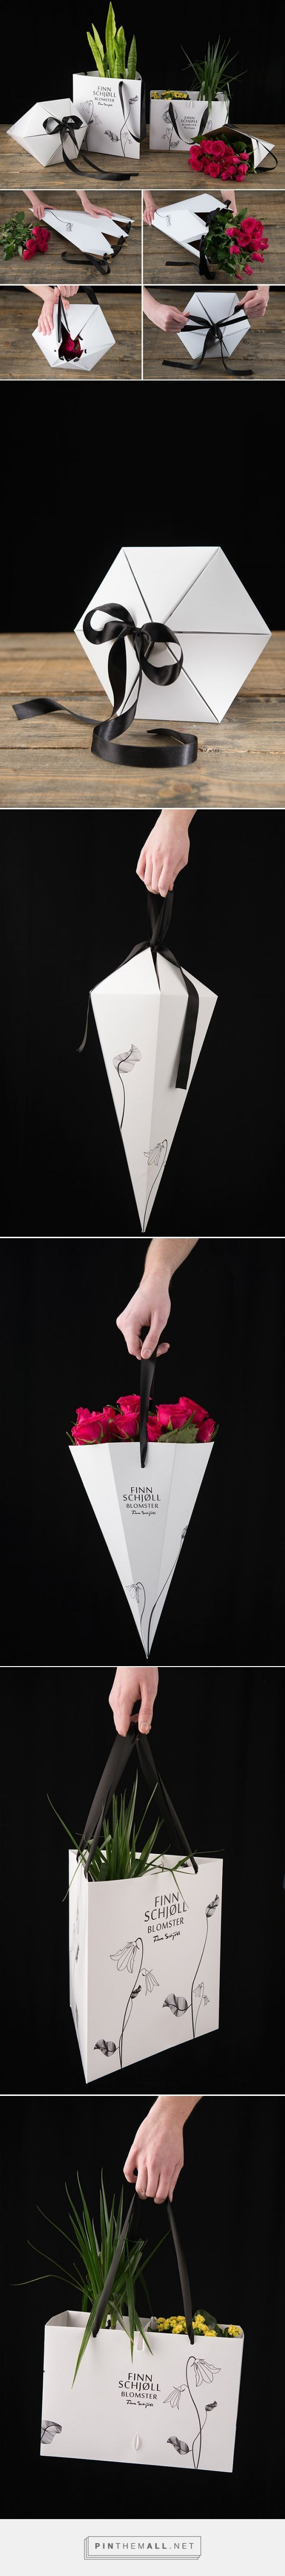 Flower packaging by Linnea Åkerberg